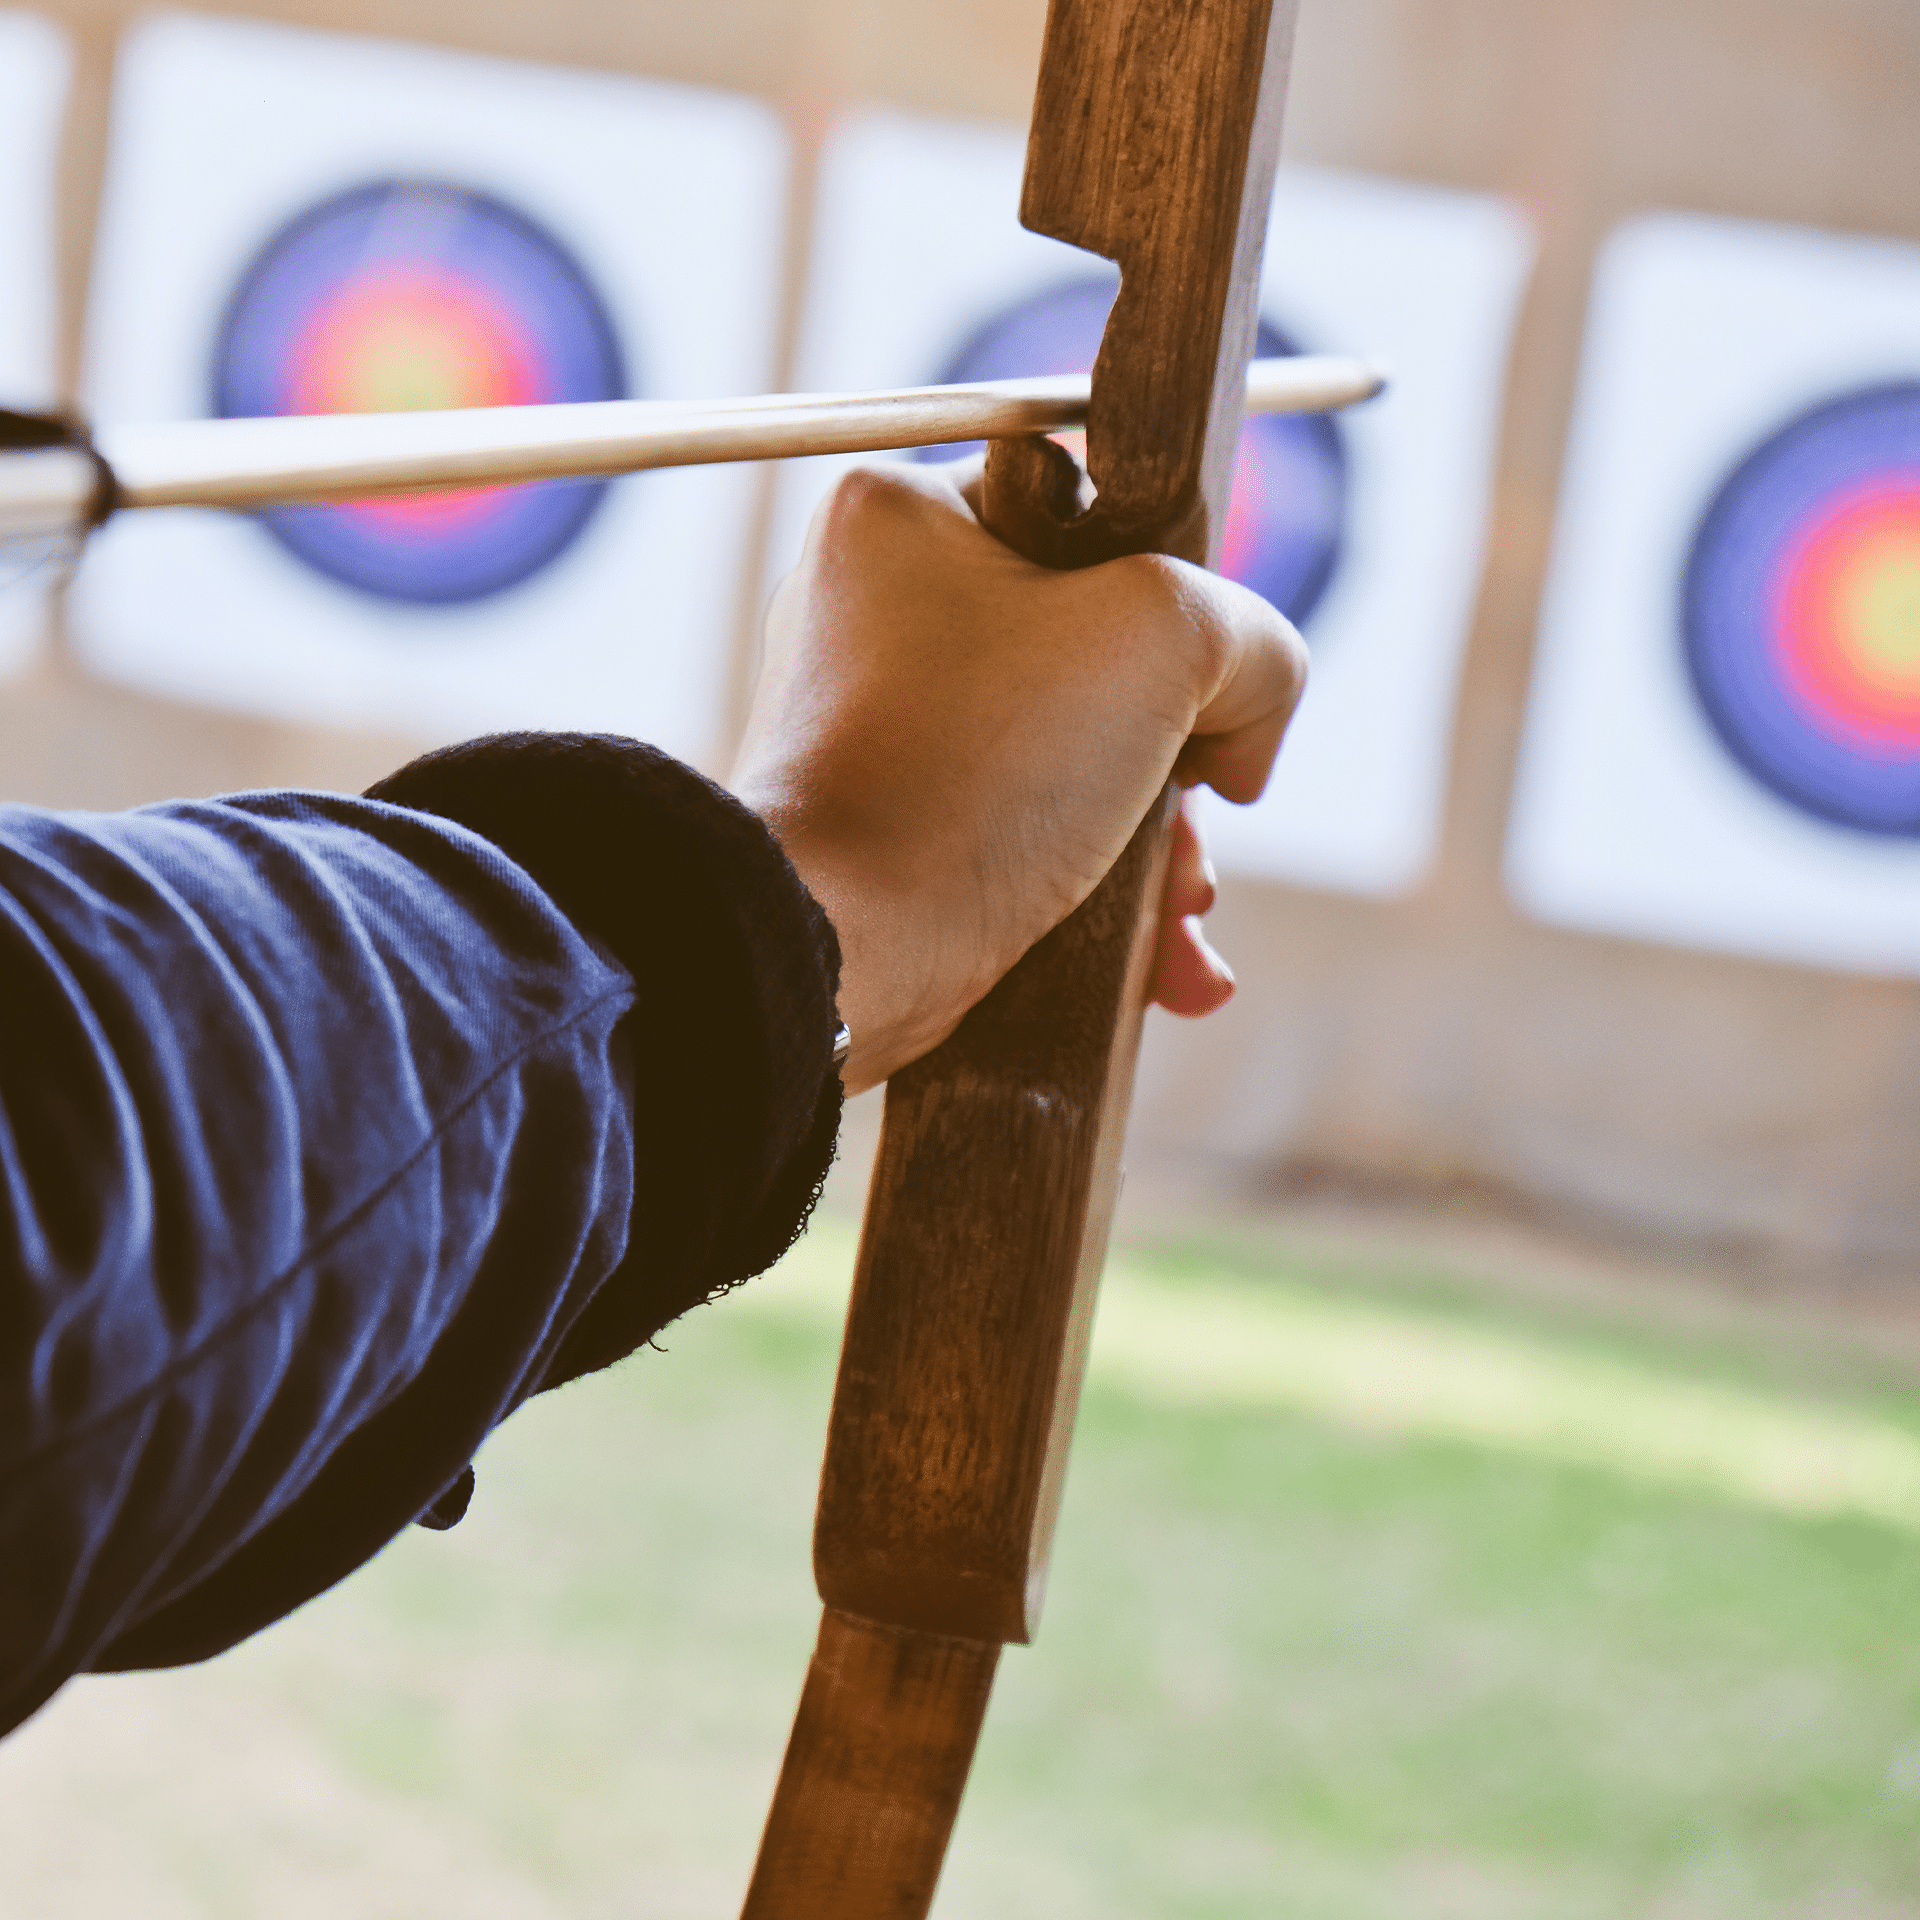 woman aiming bow and arrow at target